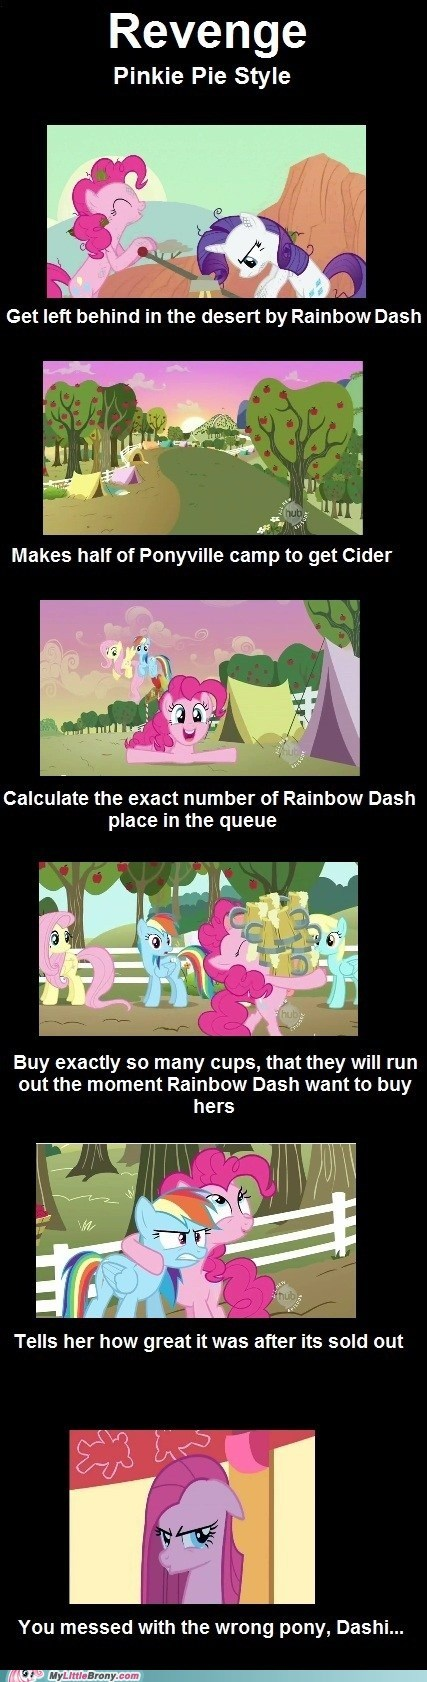 apple cider,comics,left behind,pinkie pie,rainbow dash,revenge